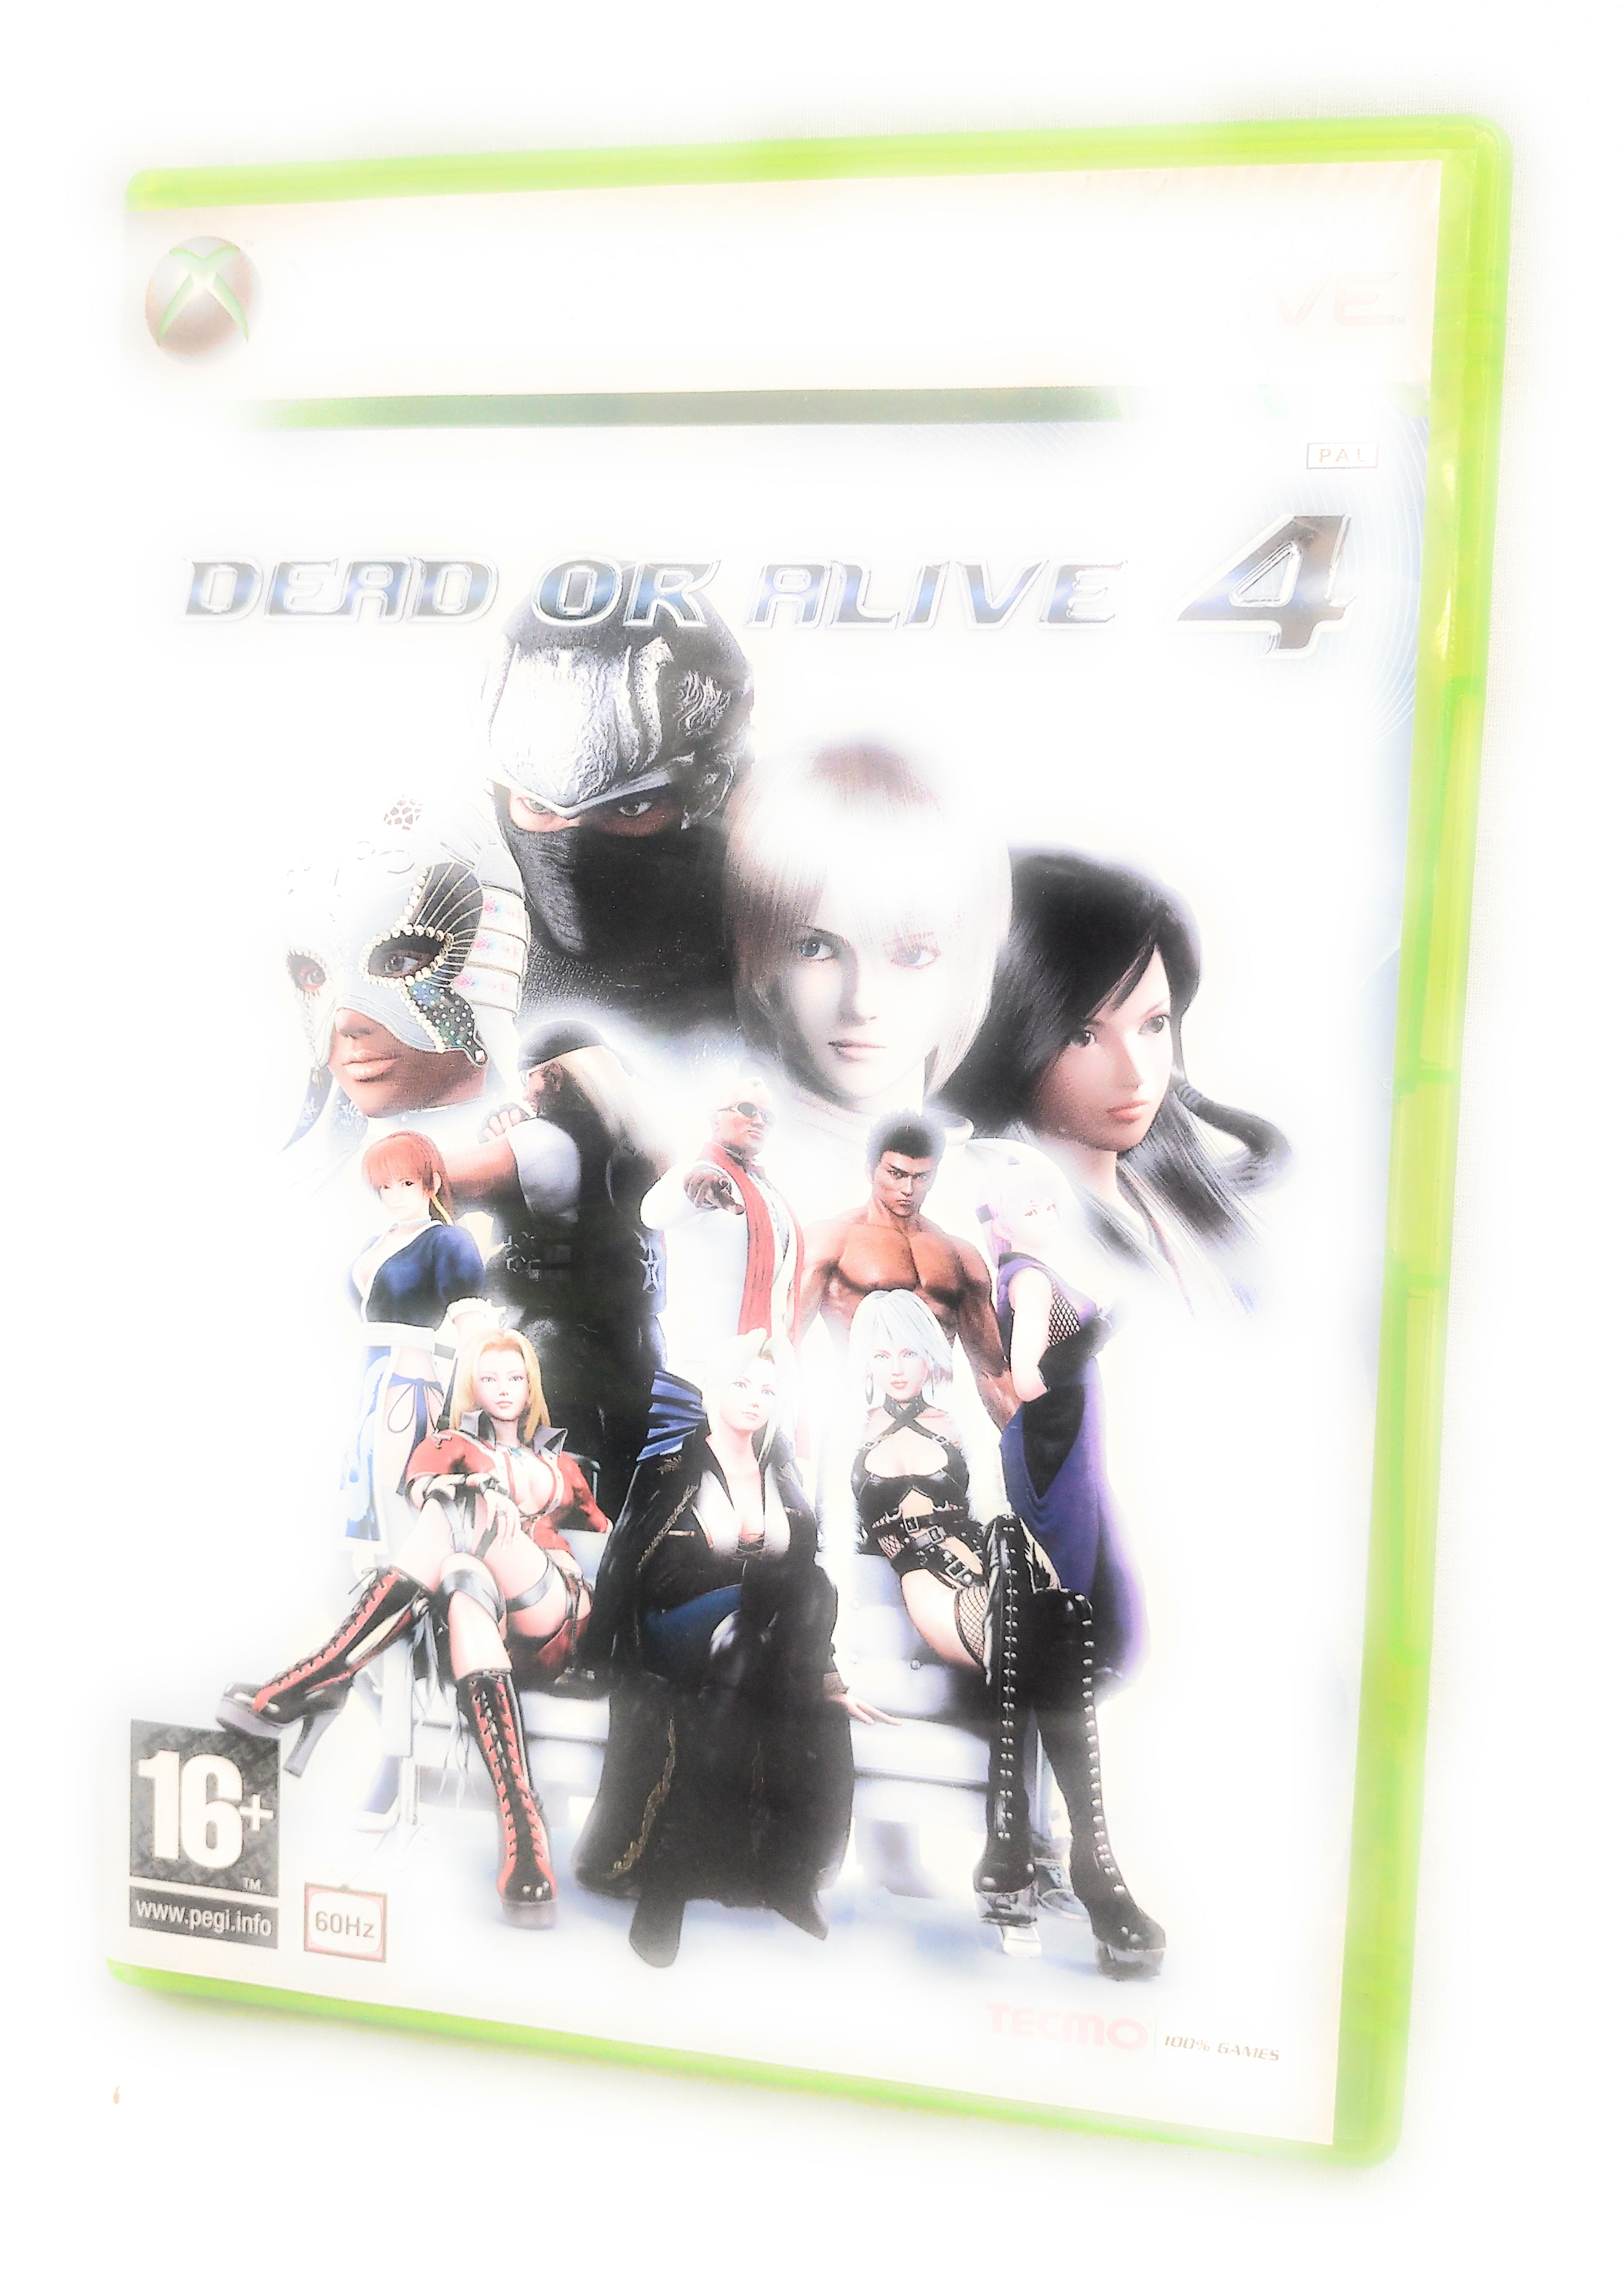 Dead Or Alive 4 - Dead or Alive 4 (Xbox 360)